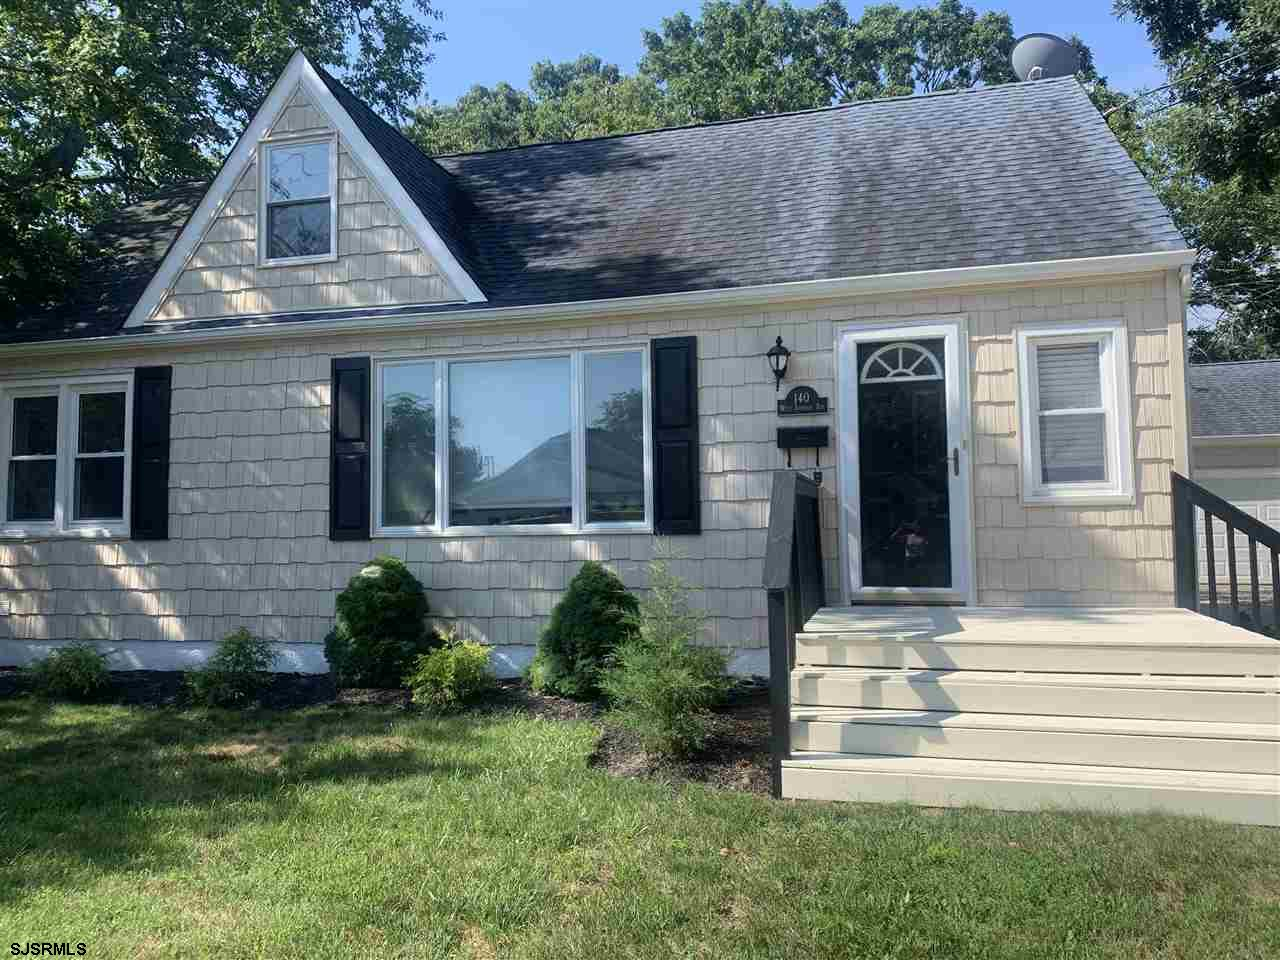 Classic Cape Cod with finished 2nd floor space featuring full designer bath. This highly desirable m